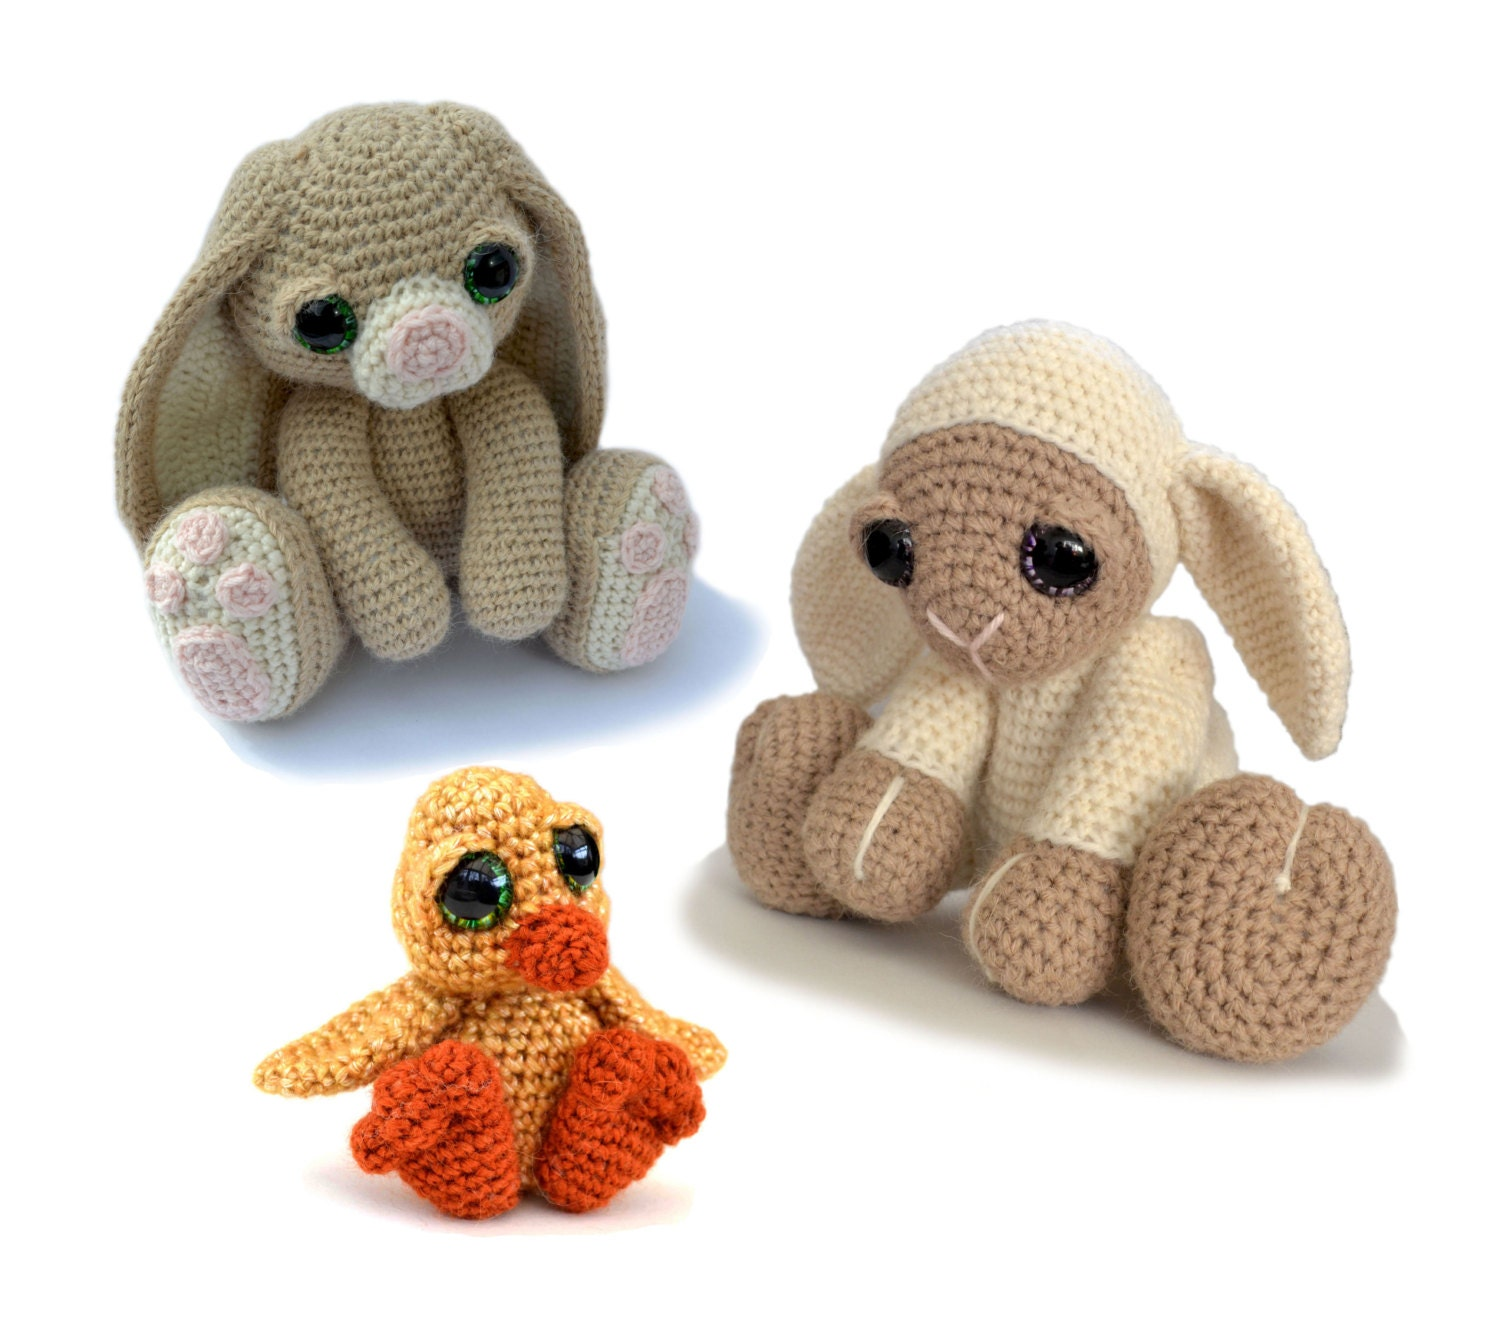 amigurumi ostern h keln muster bundle f r hase von patchworkmoose. Black Bedroom Furniture Sets. Home Design Ideas